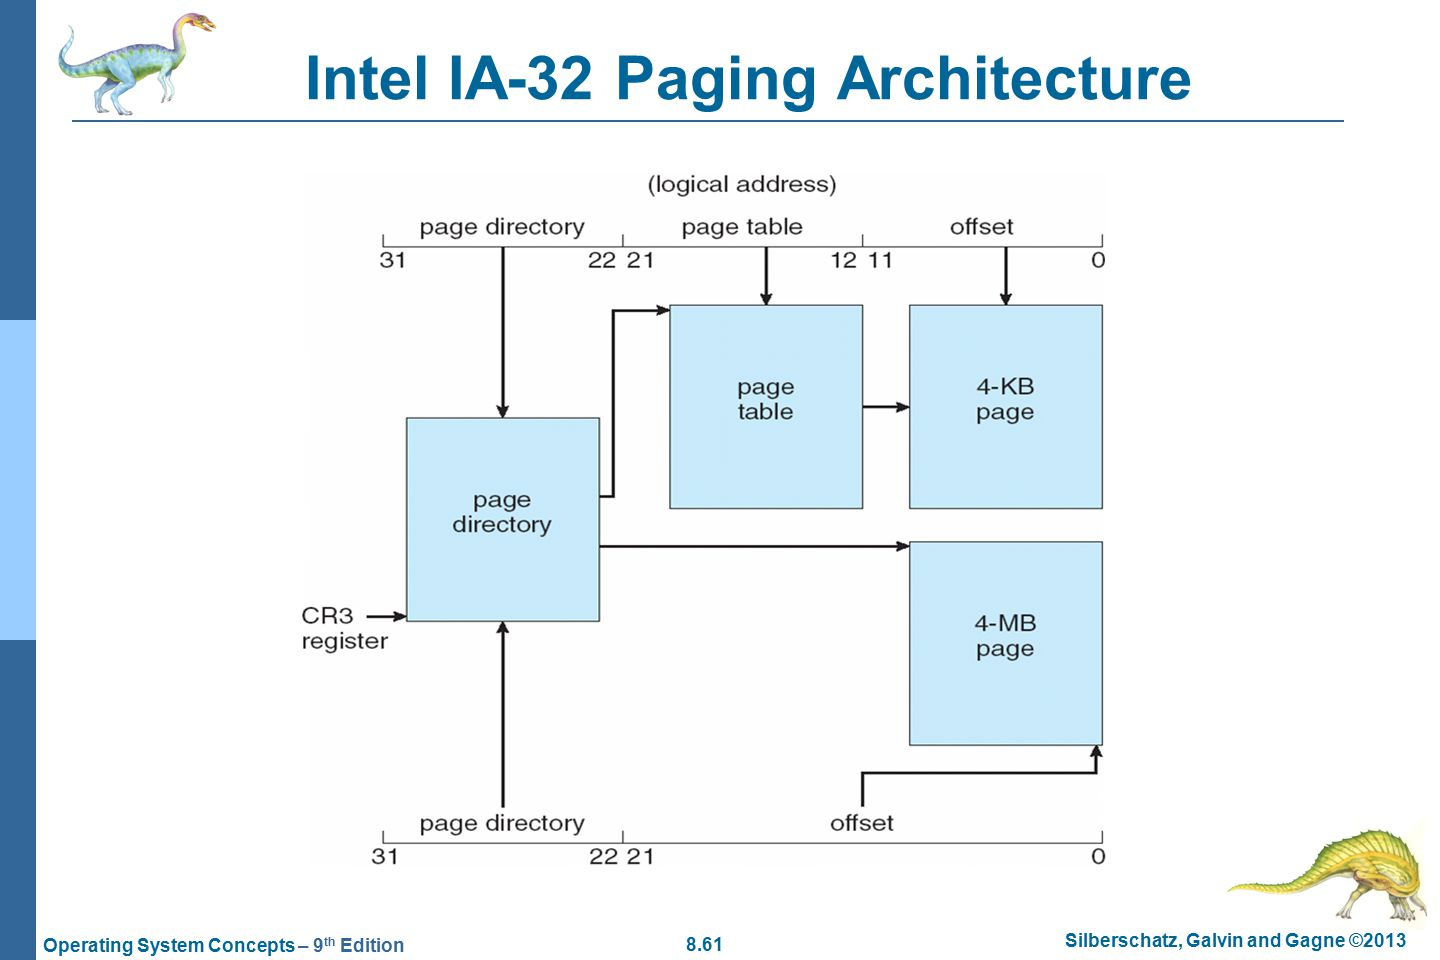 8.61 Silberschatz, Galvin and Gagne ©2013 Operating System Concepts – 9 th Edition Intel IA-32 Paging Architecture